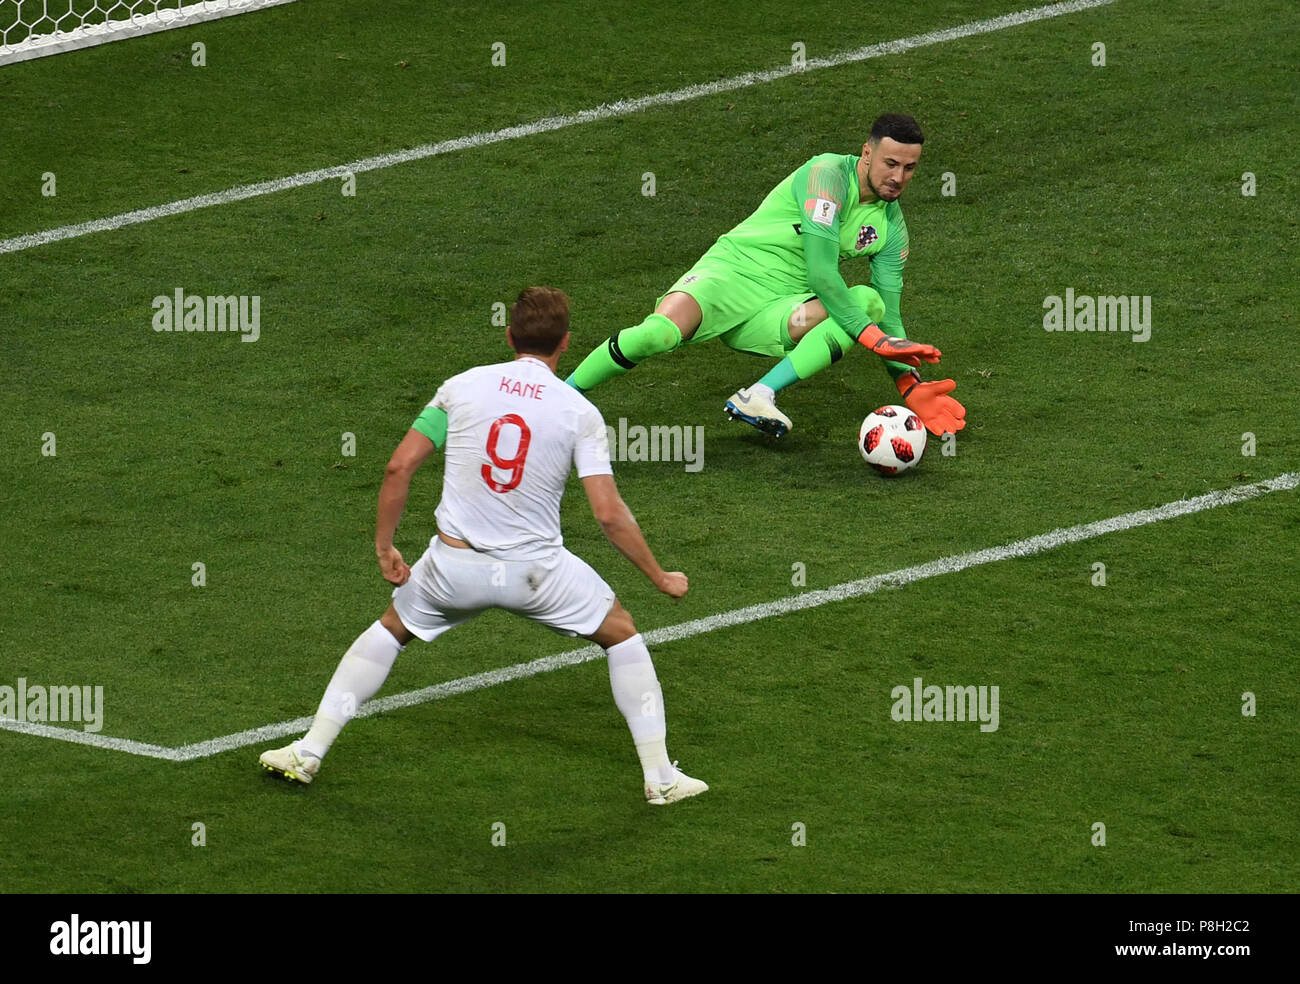 Moscow, Russia. 11th July, 2018. Goalkeepers Danijel Subasic (R) of Croatia defends during the 2018 FIFA World Cup semi-final match between England and Croatia in Moscow, Russia, July 11, 2018. Credit: Wang Yuguo/Xinhua/Alamy Live News - Stock Image